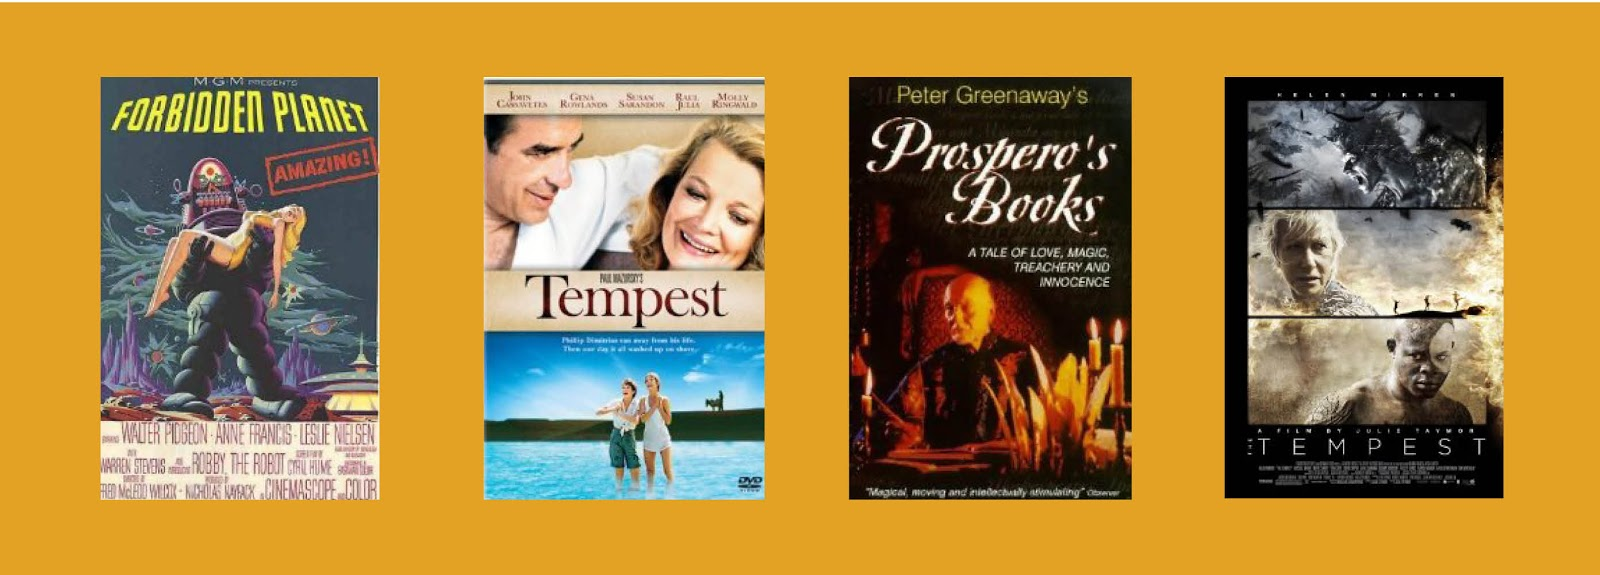 comparison of the tempest and forbidden A comparison of forbidden planet and william shakespeares the tempest the bbc an analysis of the many evil deeds in macbeth unveiled the identity of the 13th doctor and as with an essay on taiwanese development model.